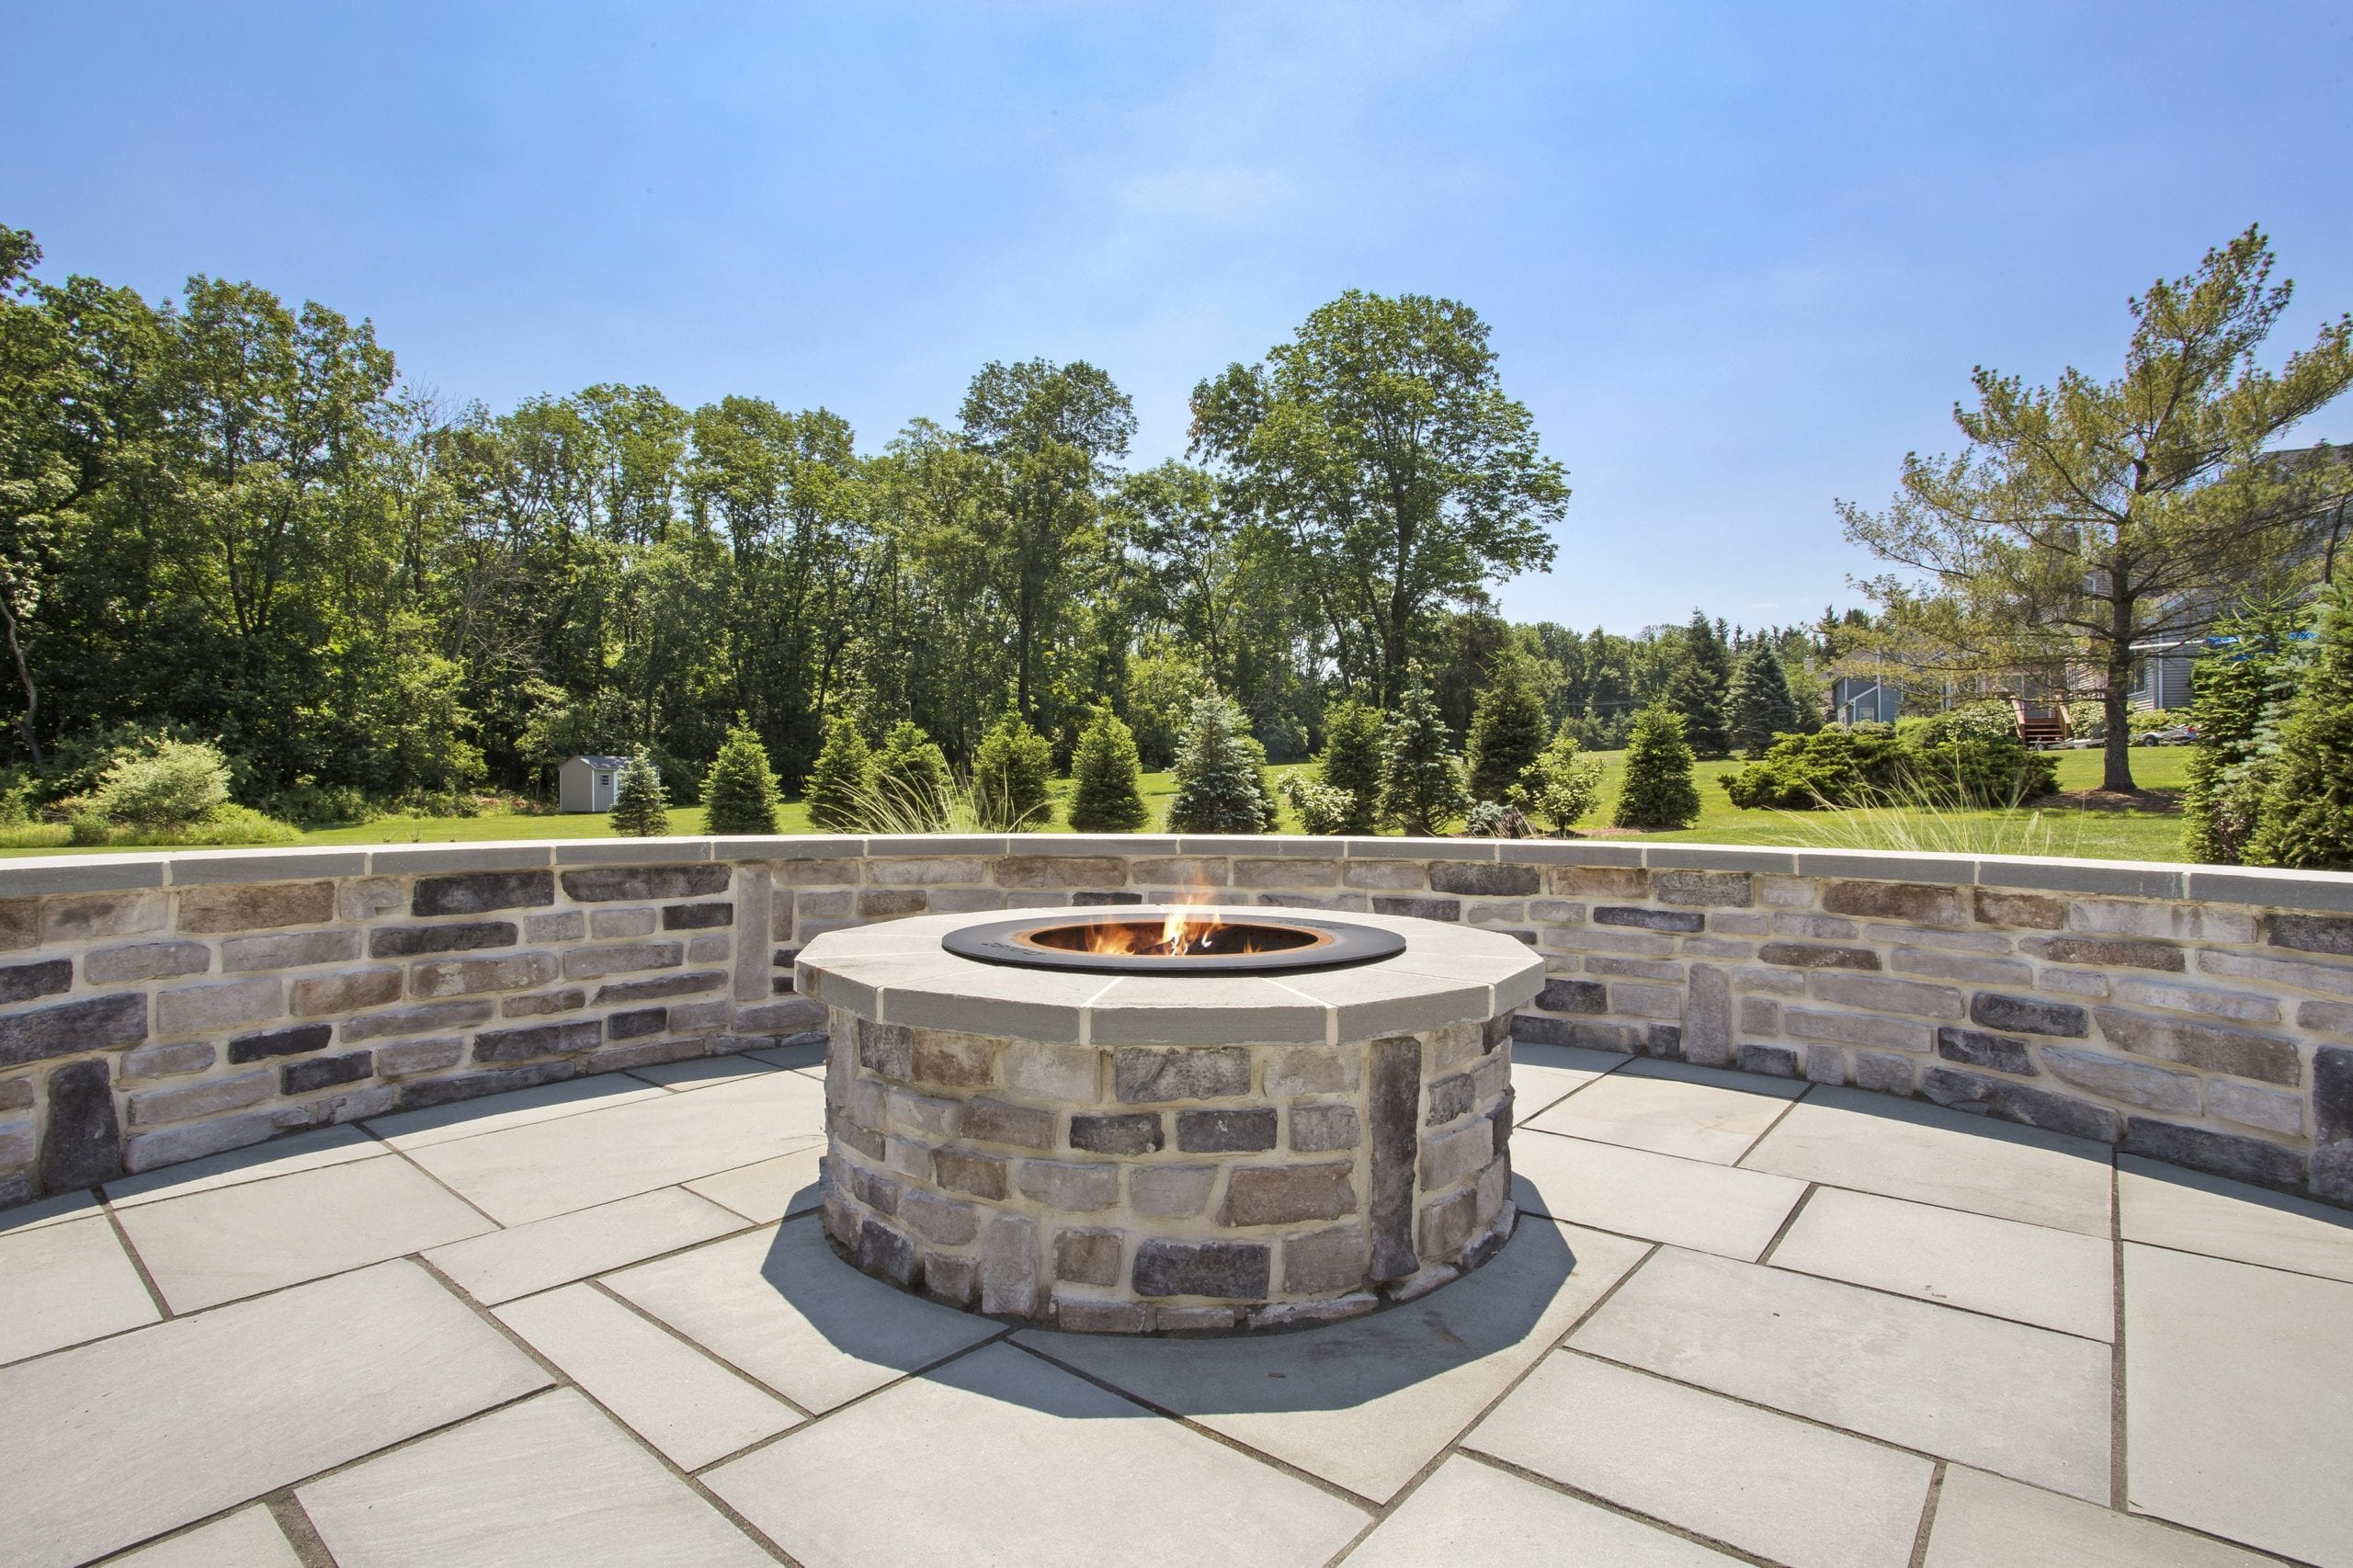 Landscaping Services Company in Bedminster, NJ